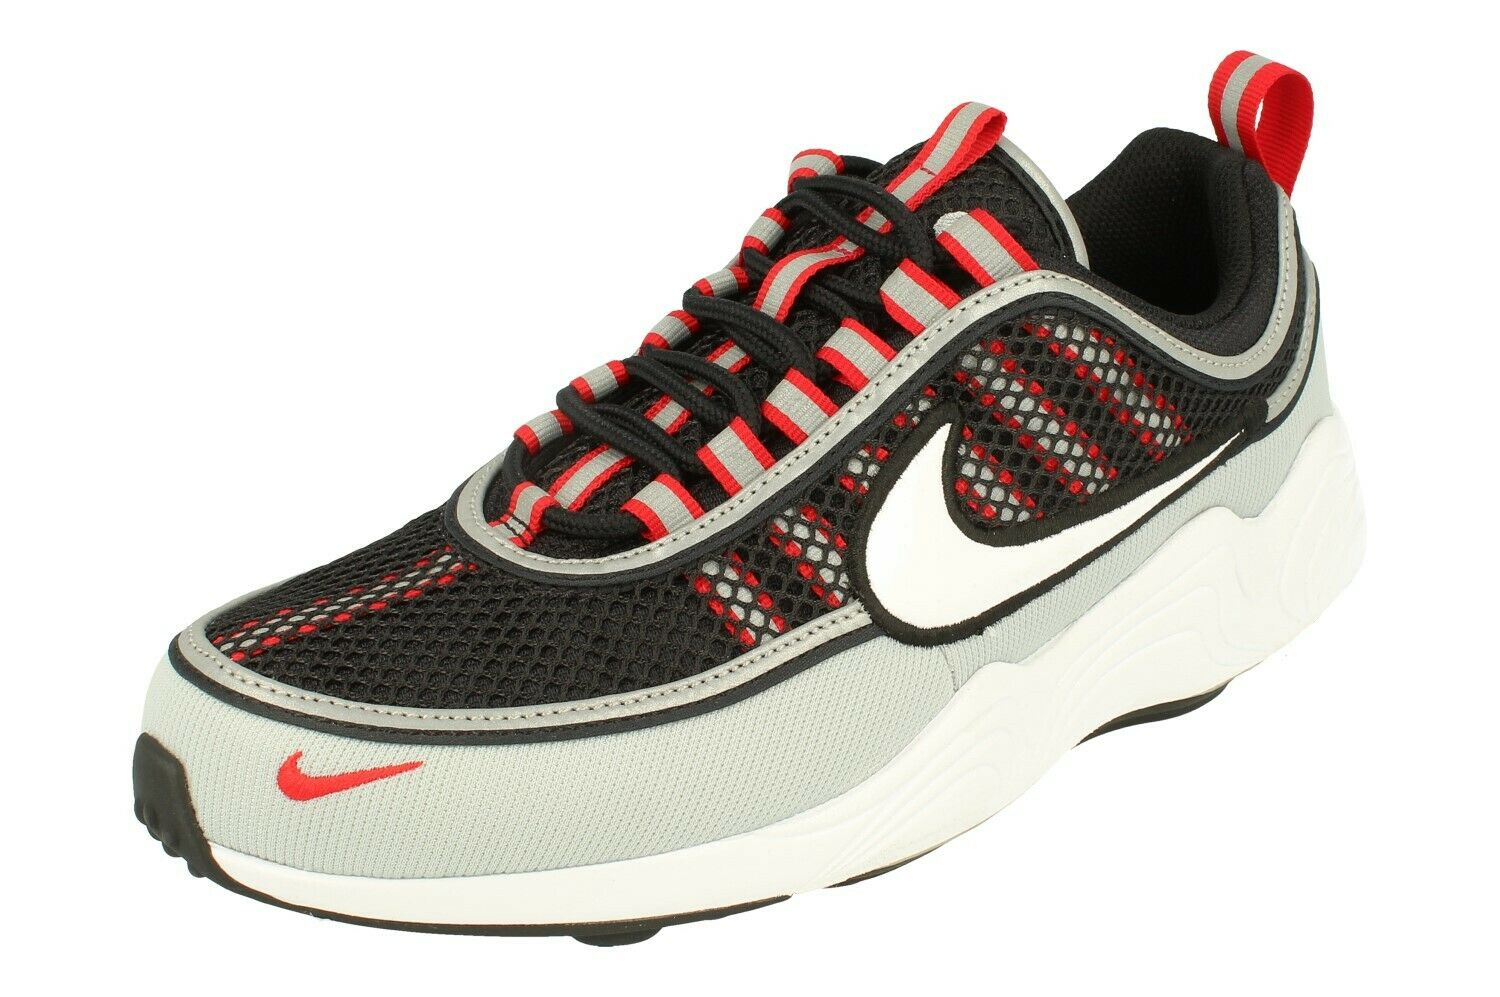 Nike Air Zoom Spiridon 16 Mens Running Trainers 926955 Sneakers shoes 010